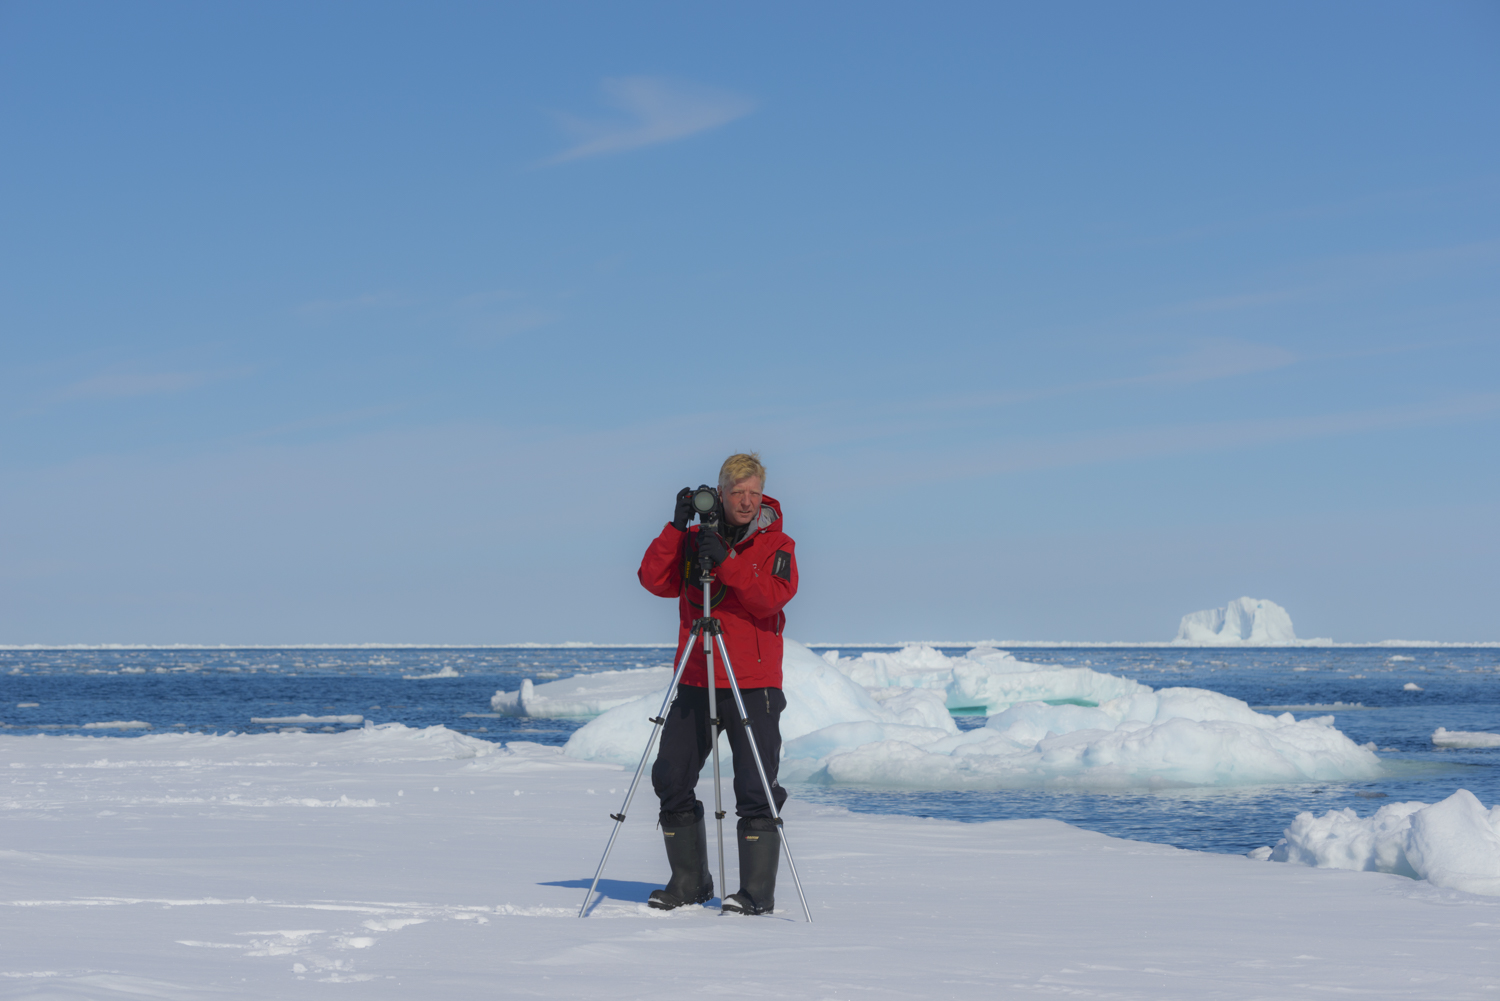 Stephen Gorman on Expedition at the Bylot Island Floe Edge 450 Miles Above the Arctic Circle (click to enlarge).